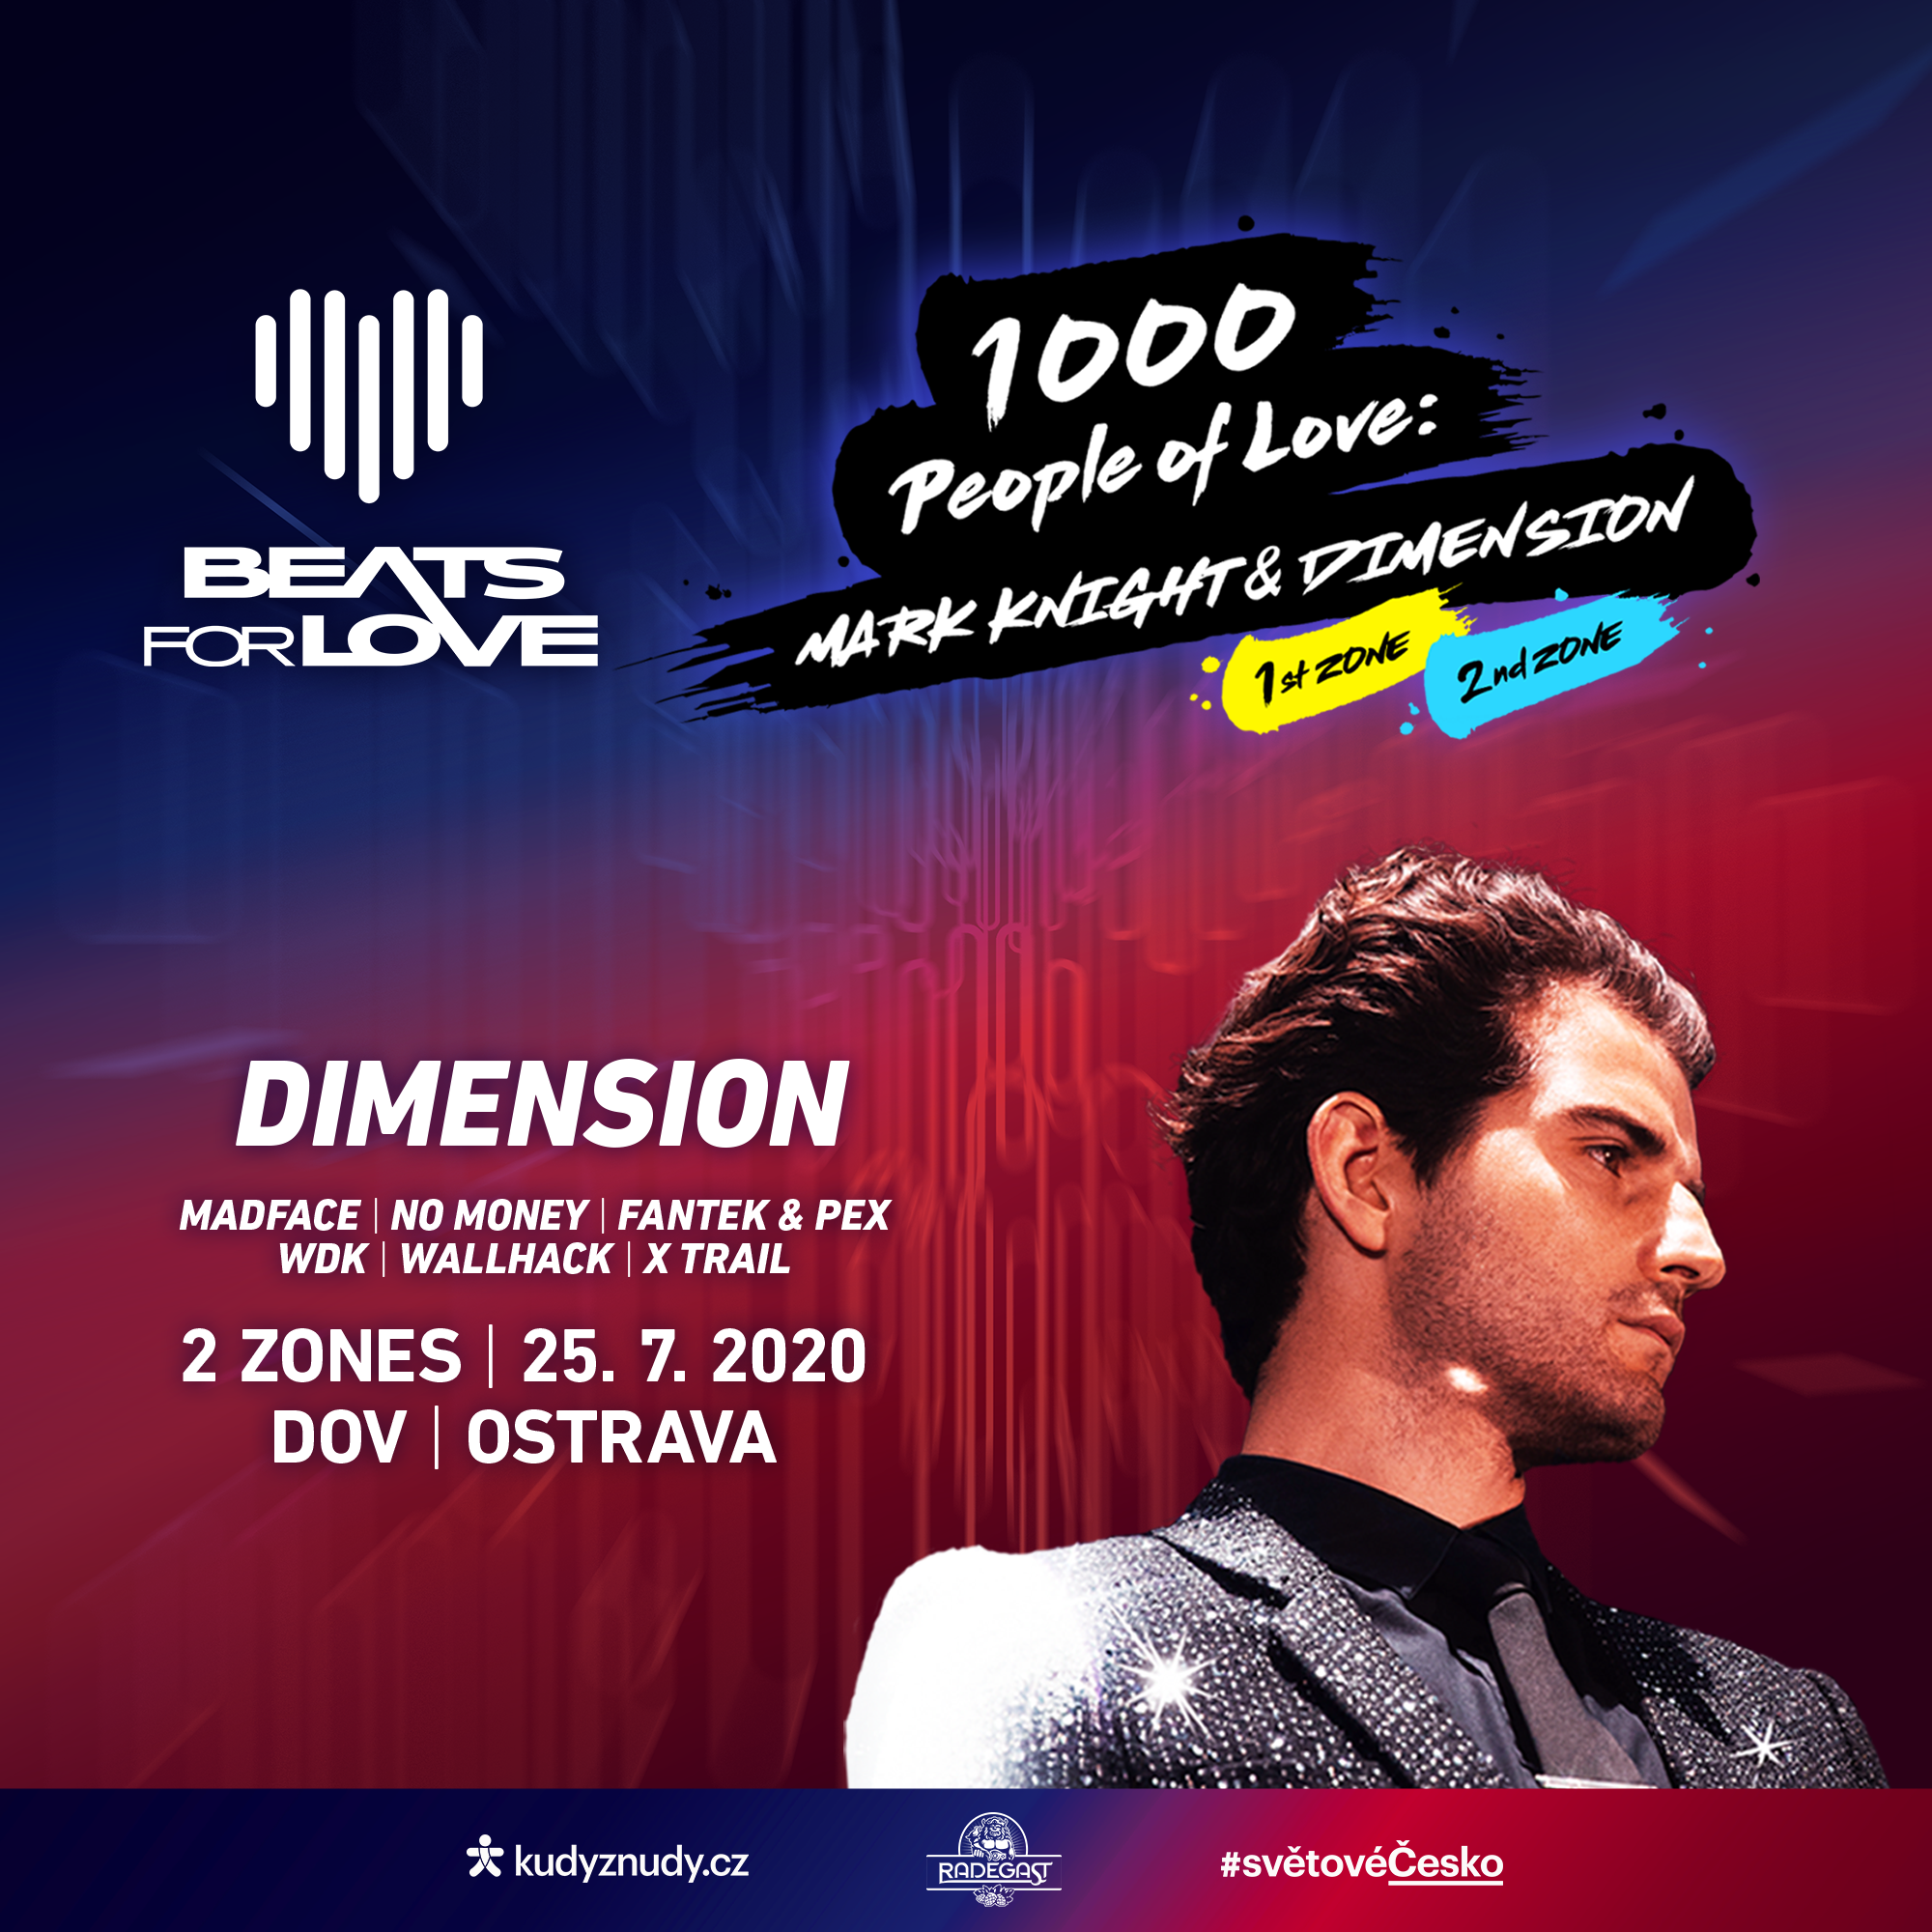 Beats for Love: 1000 People of Love 2 Zone<BR>Mainstream Drum & Bass w/ Dimension